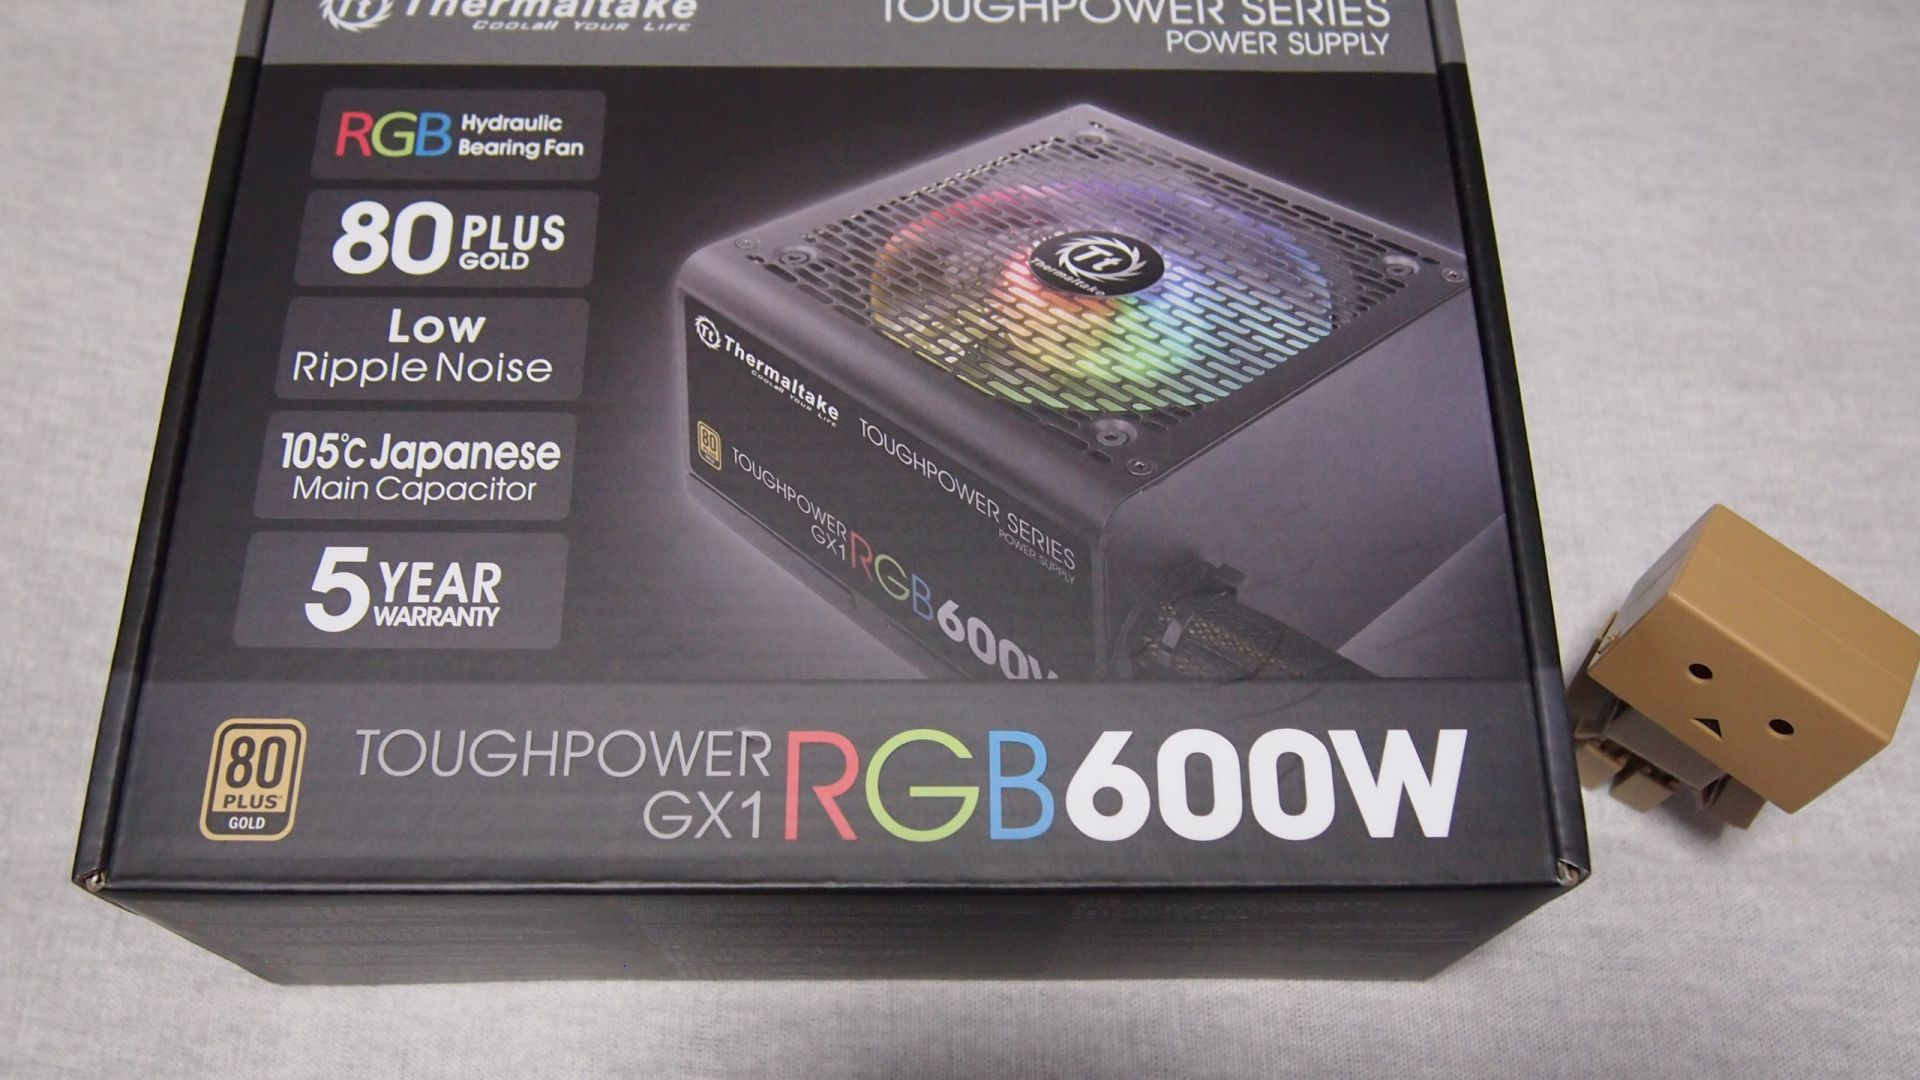 Toughpower GX1 Gold